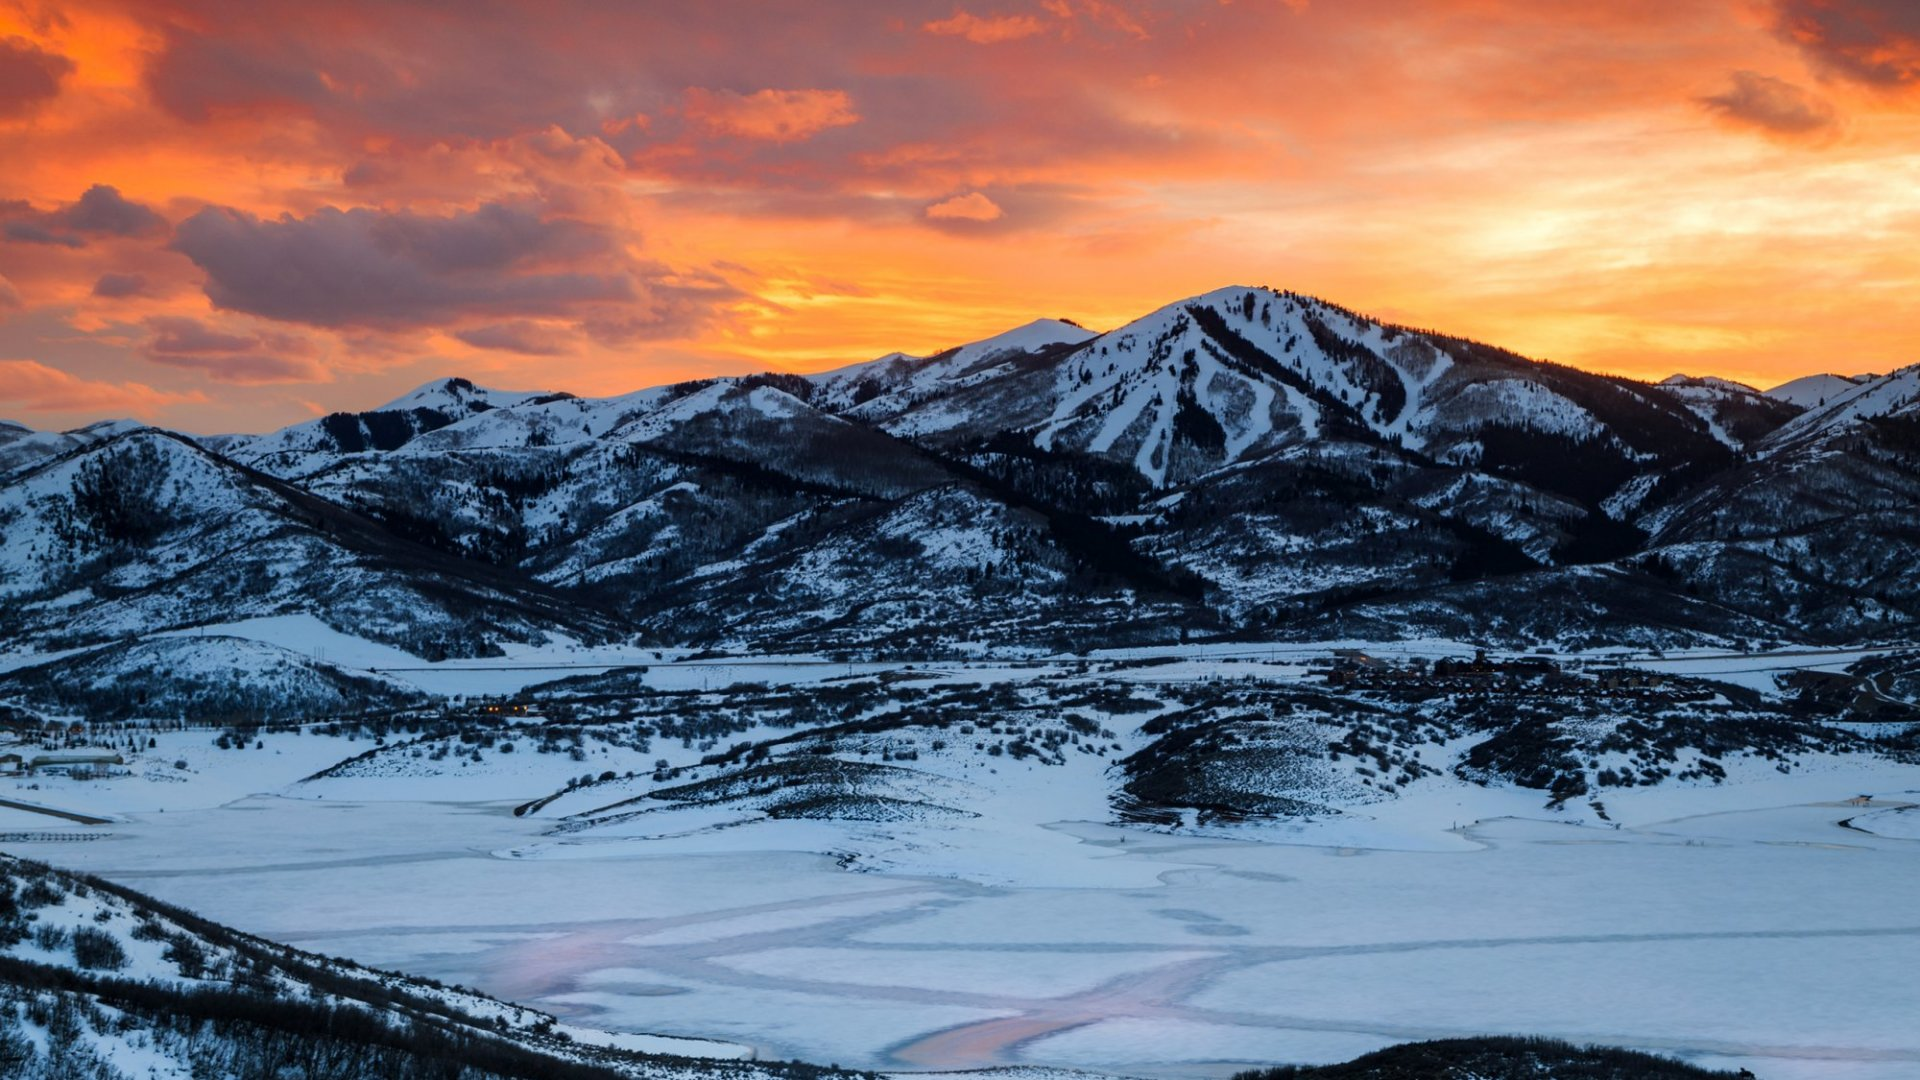 Snow Makes the Utah Mountains Special. The Talented Workforce Does the Same for the Economy